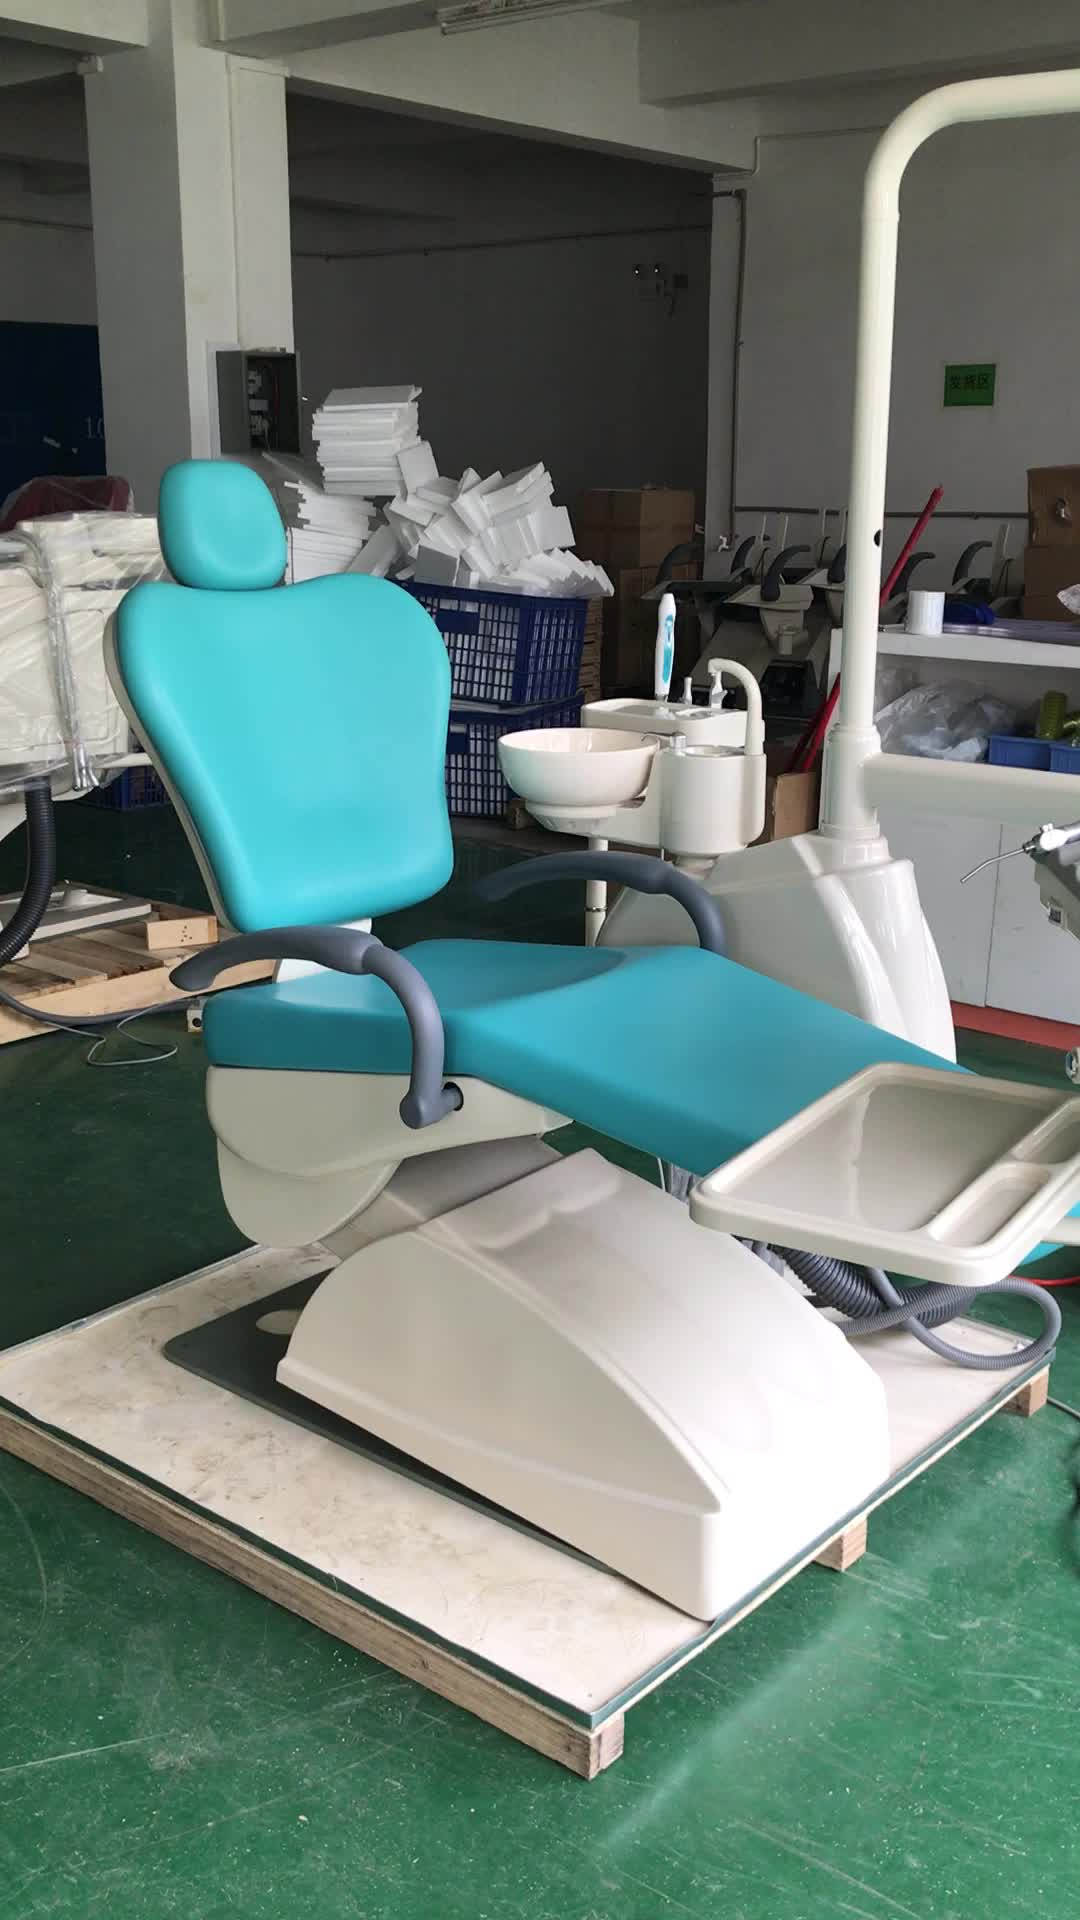 ORT-180 Dental chair manufacturer electricity power source panoramic film viewer